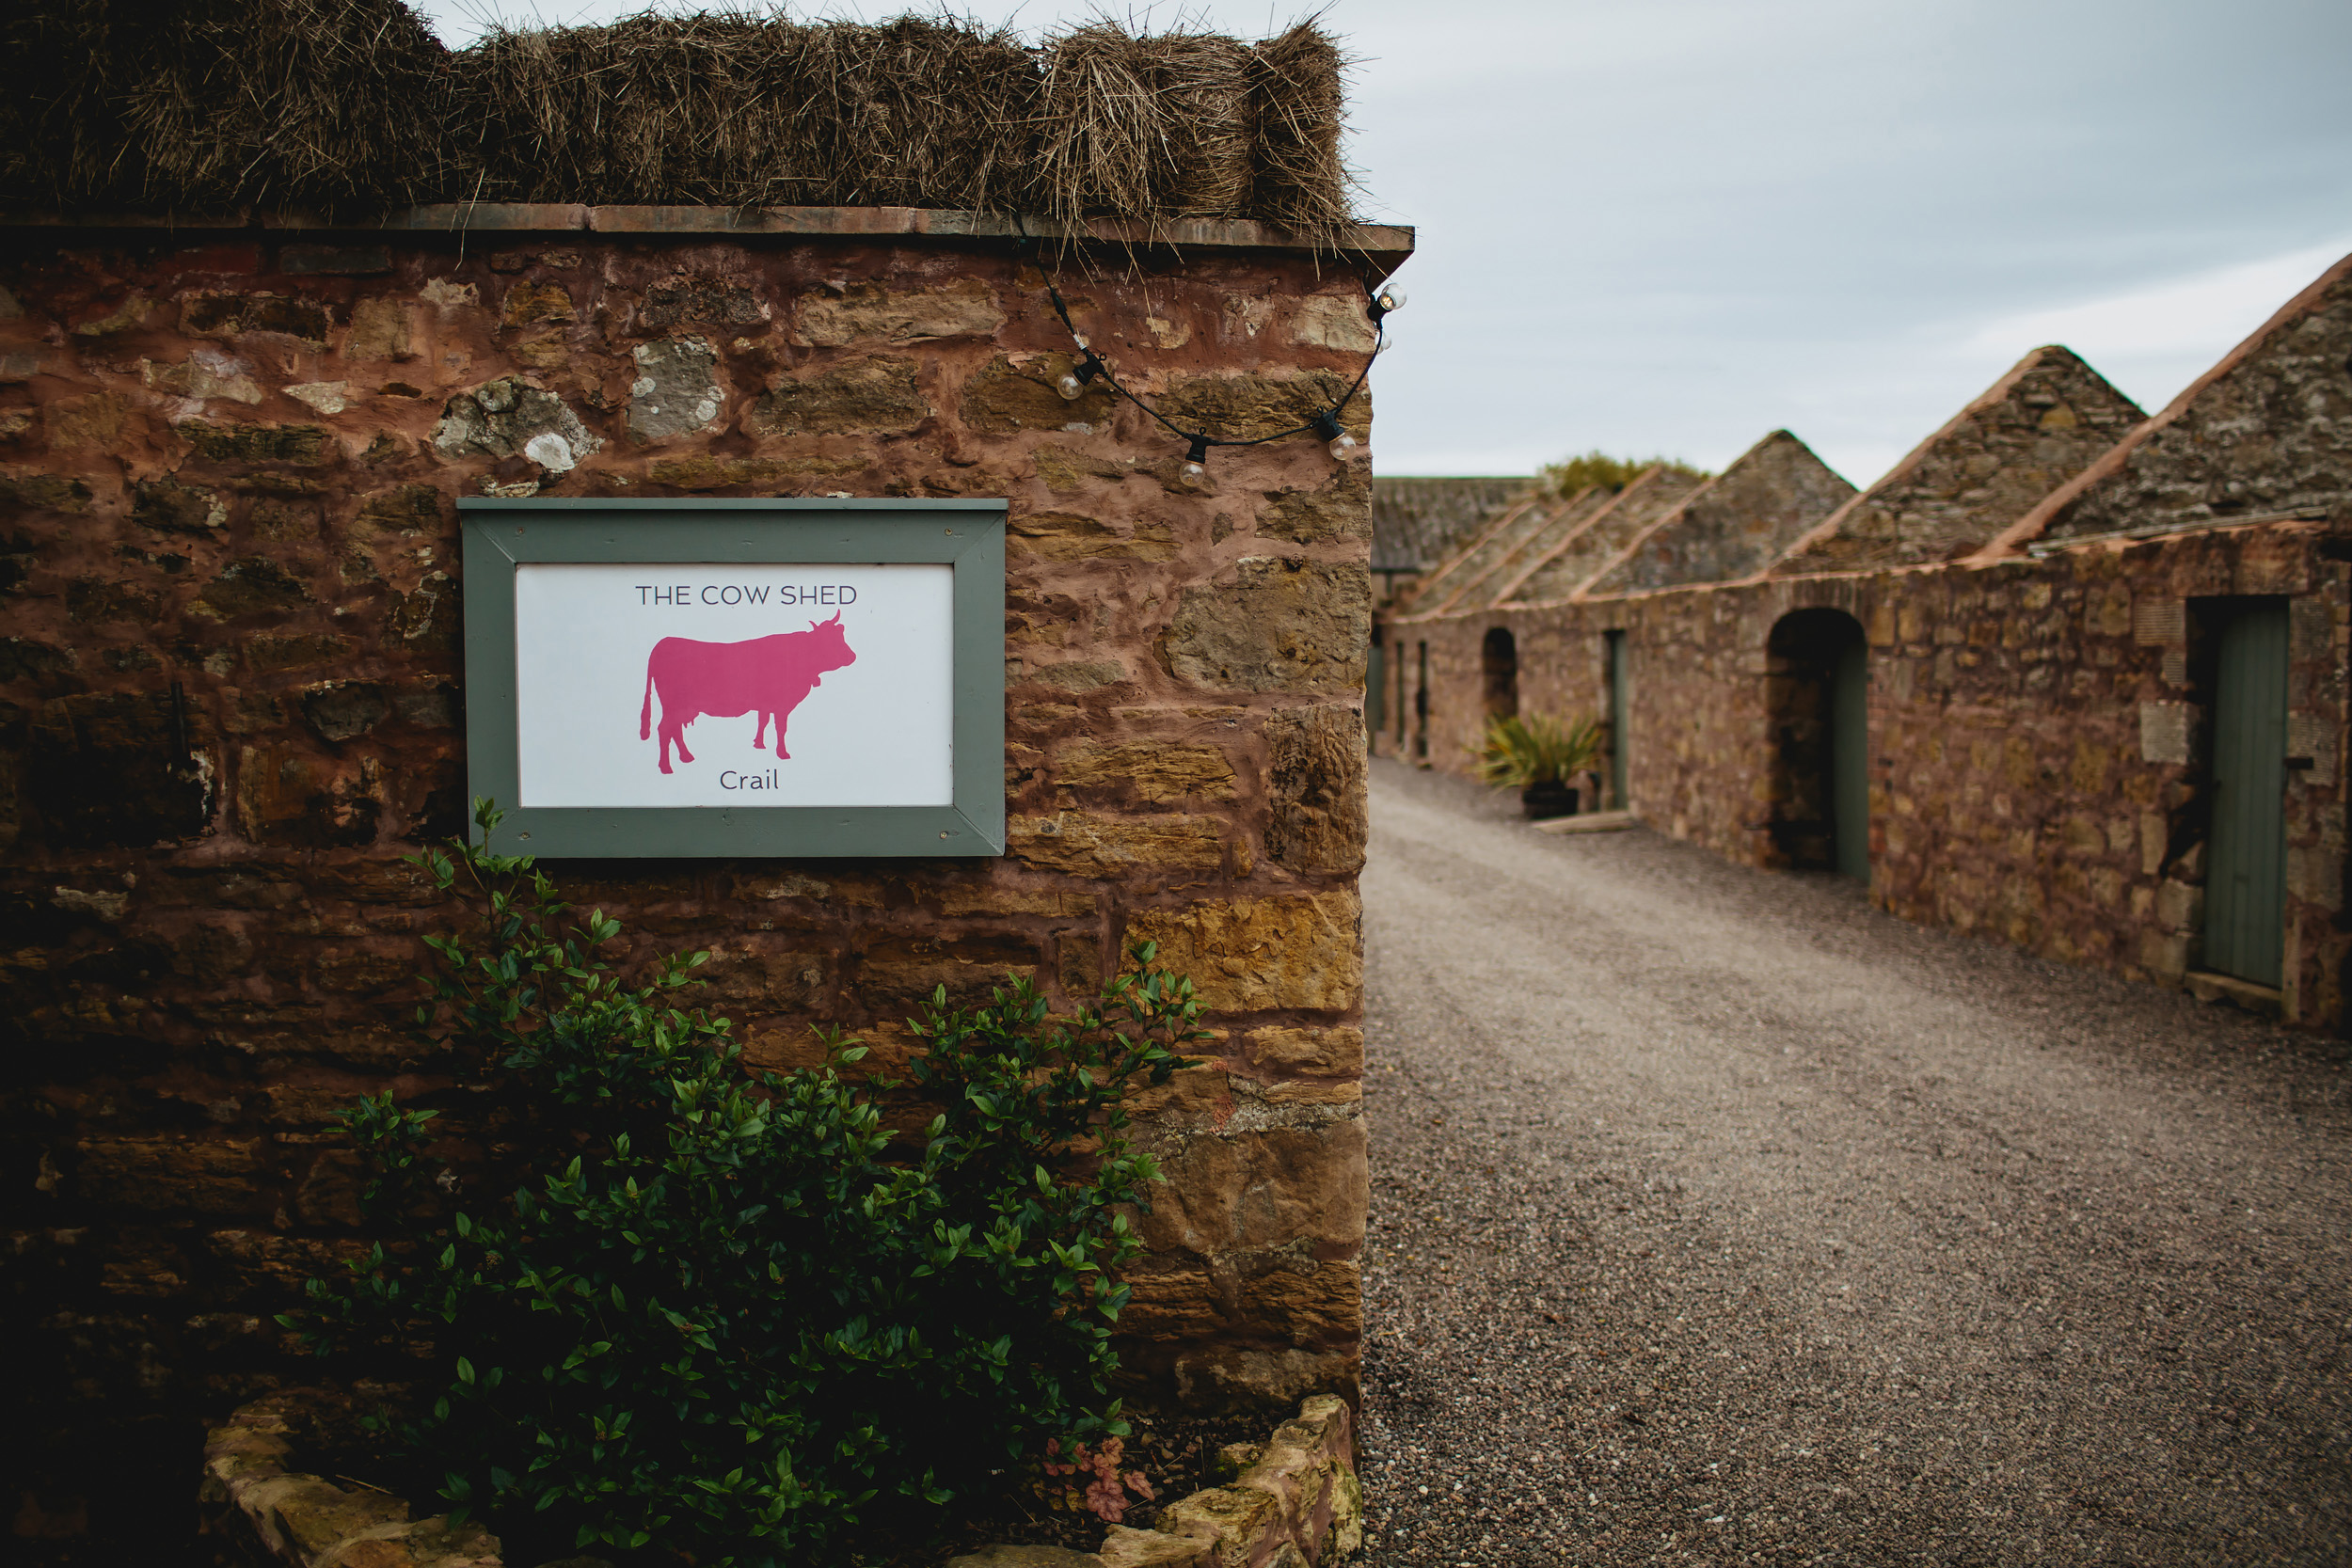 External brick wall and sign at Cow Shed Crail